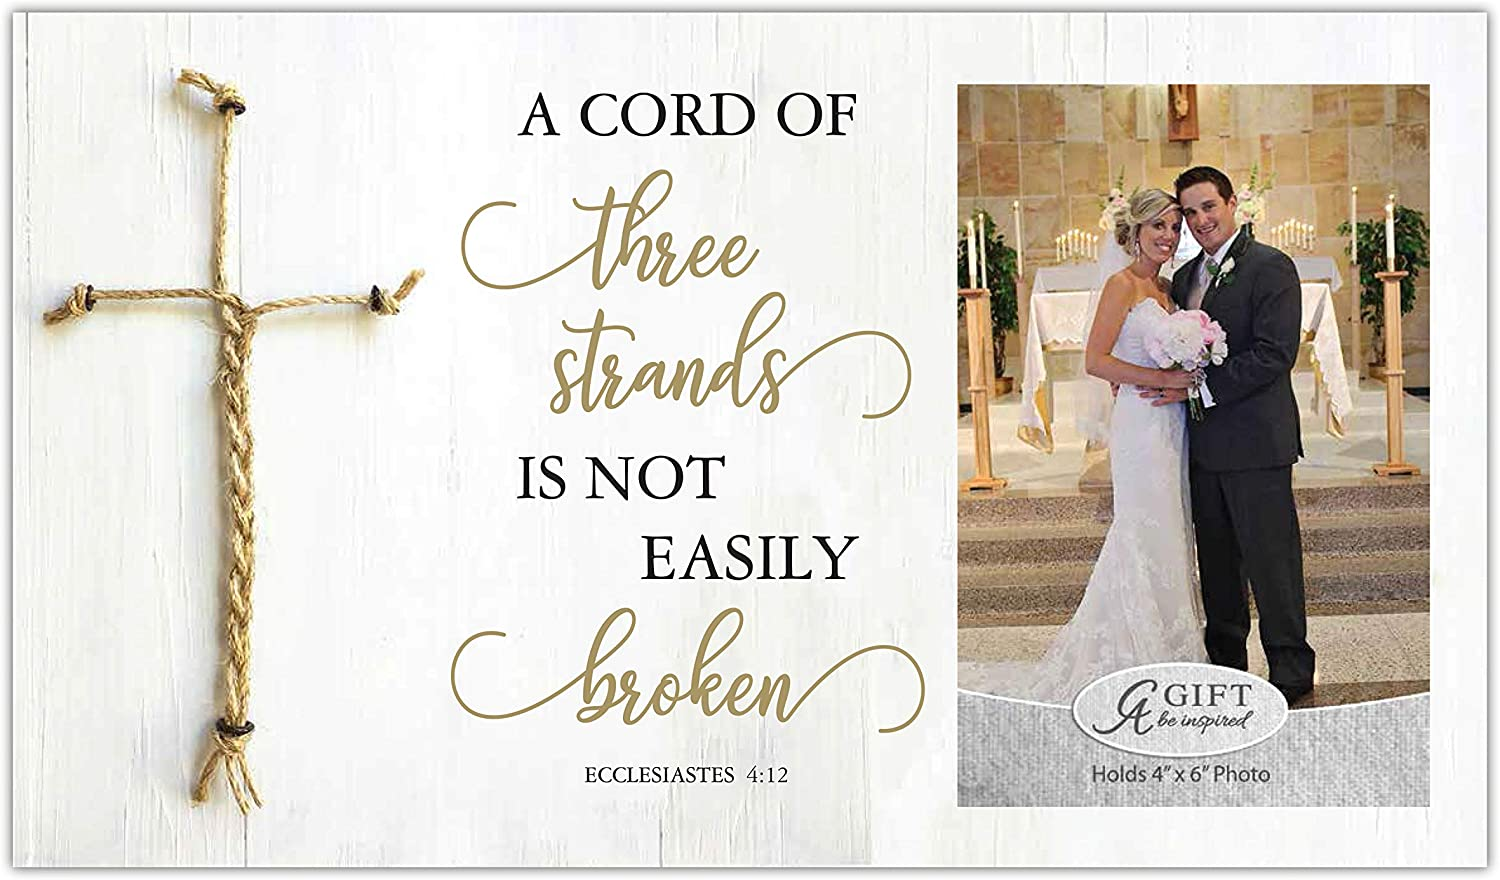 Cathedral Art Marriage Picture Frame - A Cord of Three Strands, One Size, Multicolored